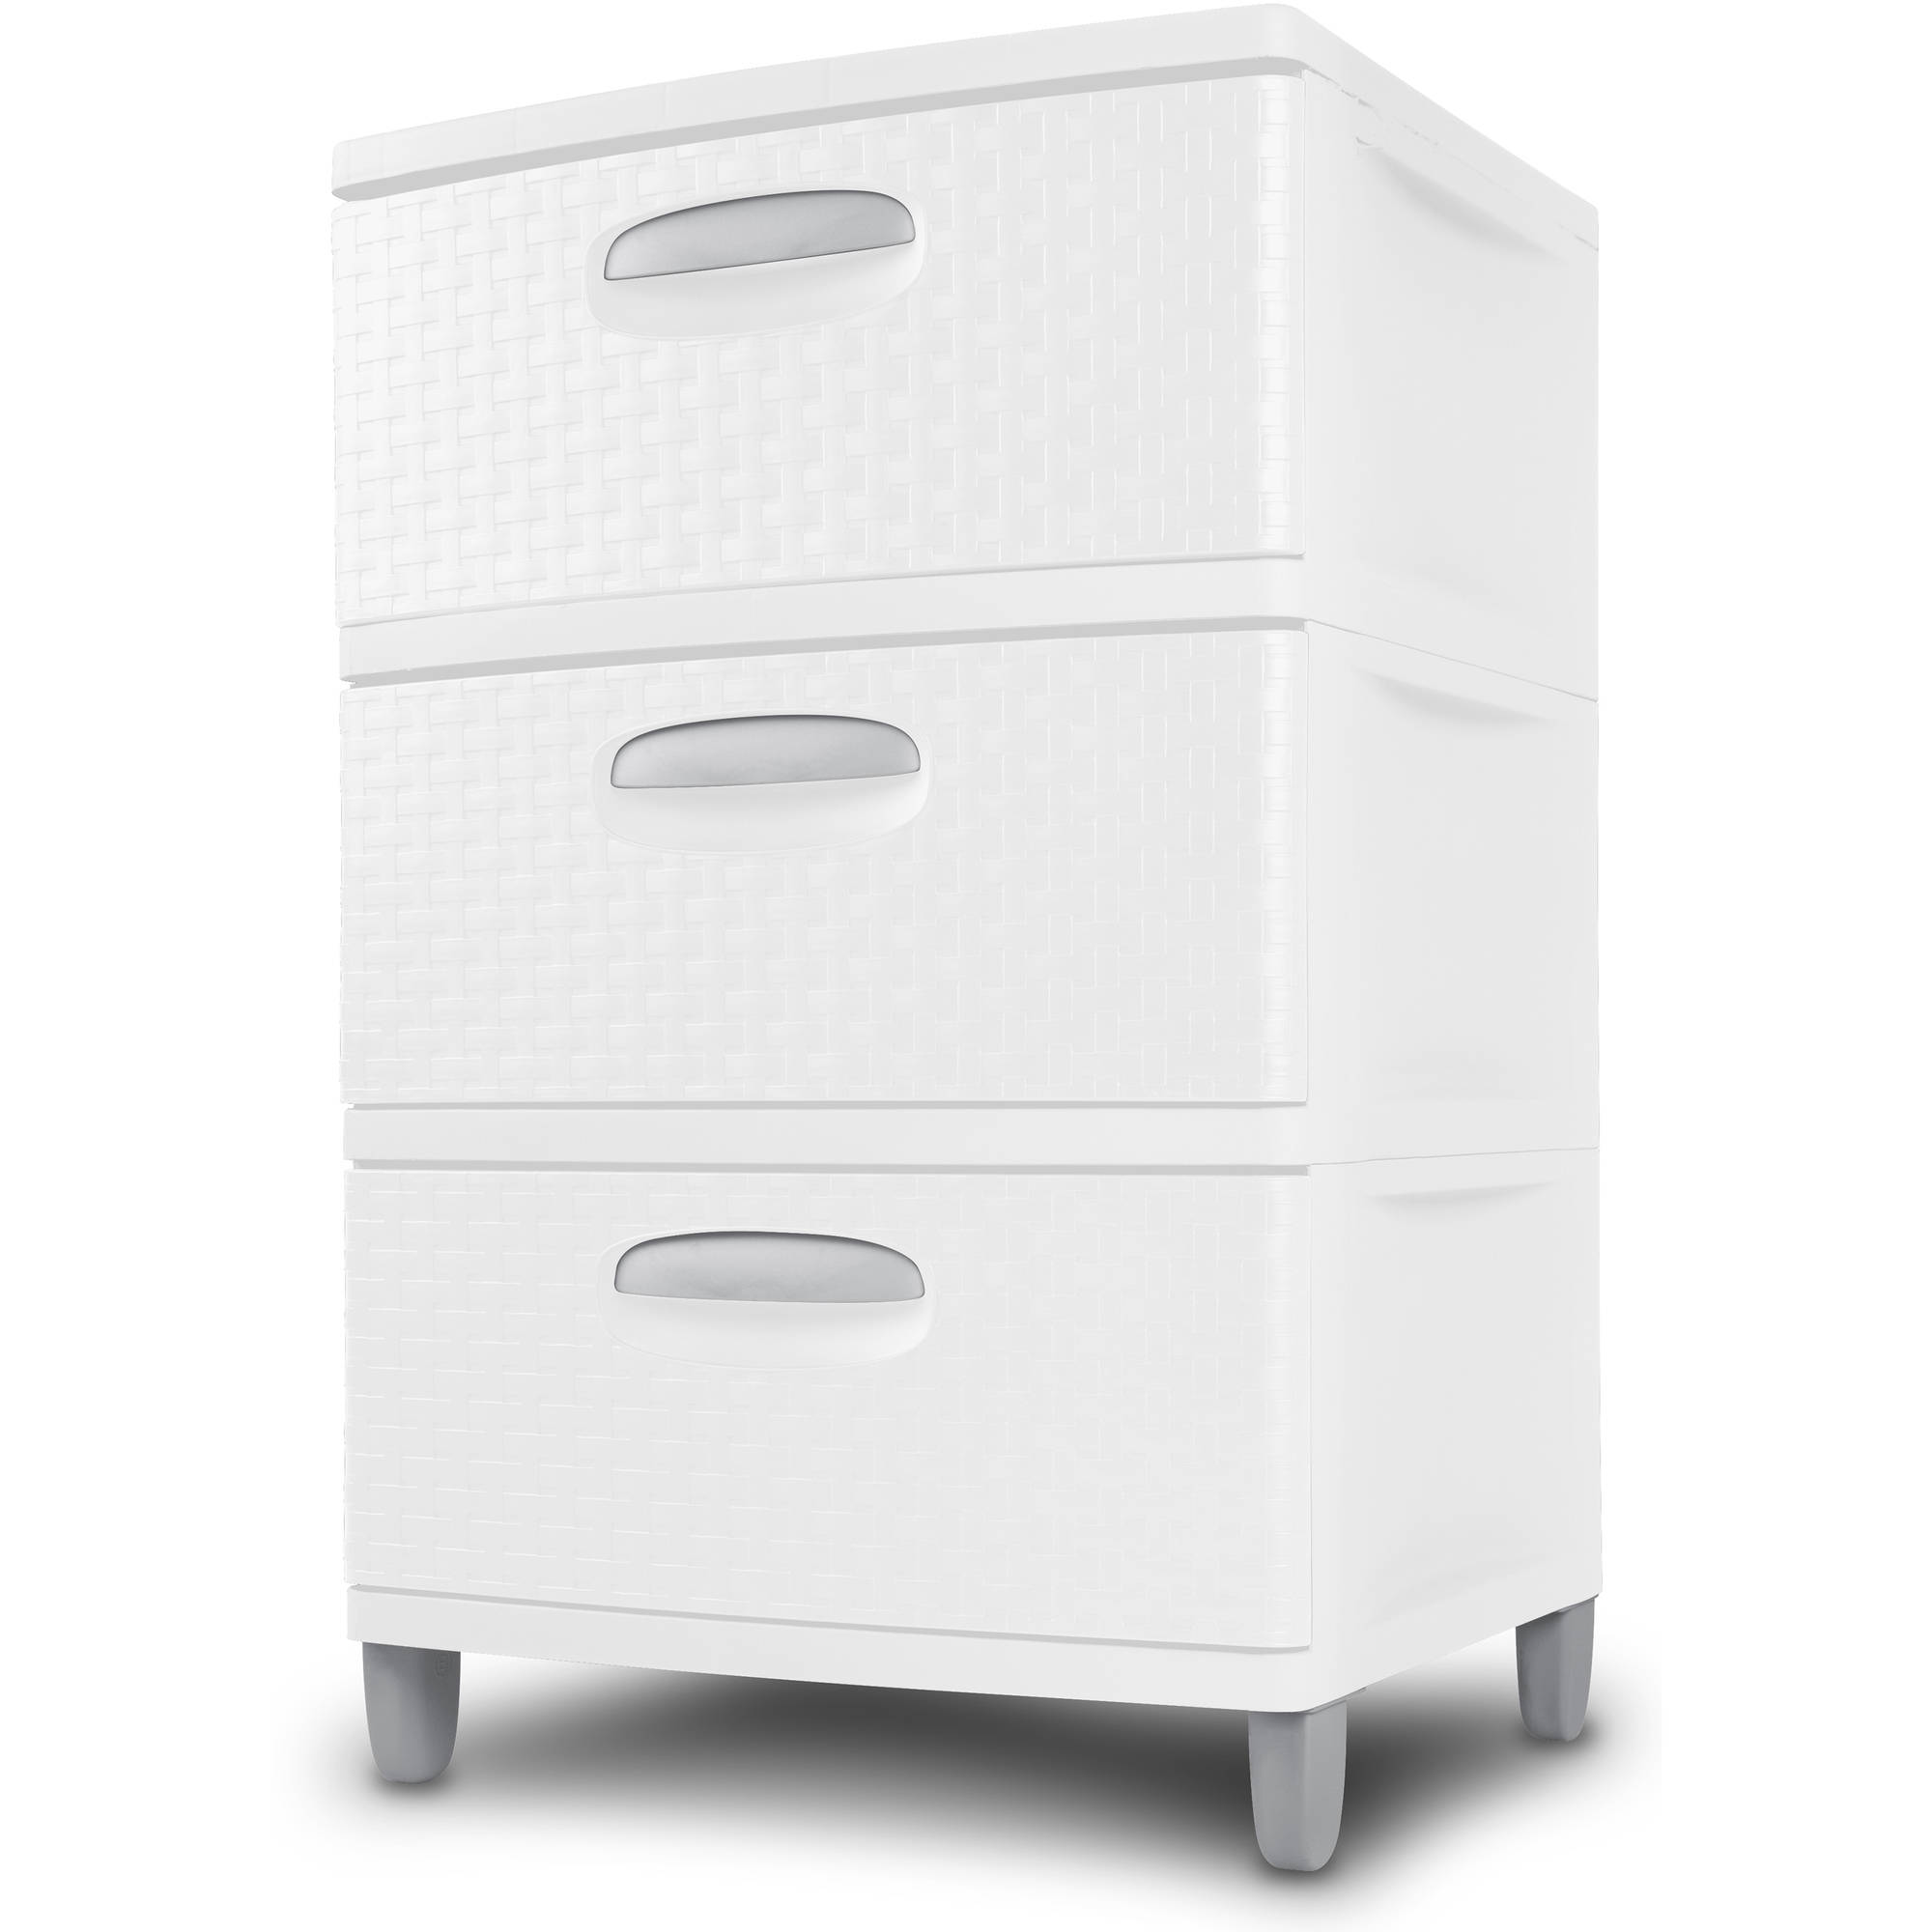 3 drawer wide storage cabinet white plastic weave set of 2 home office organizer 631907718950 ebay. Black Bedroom Furniture Sets. Home Design Ideas